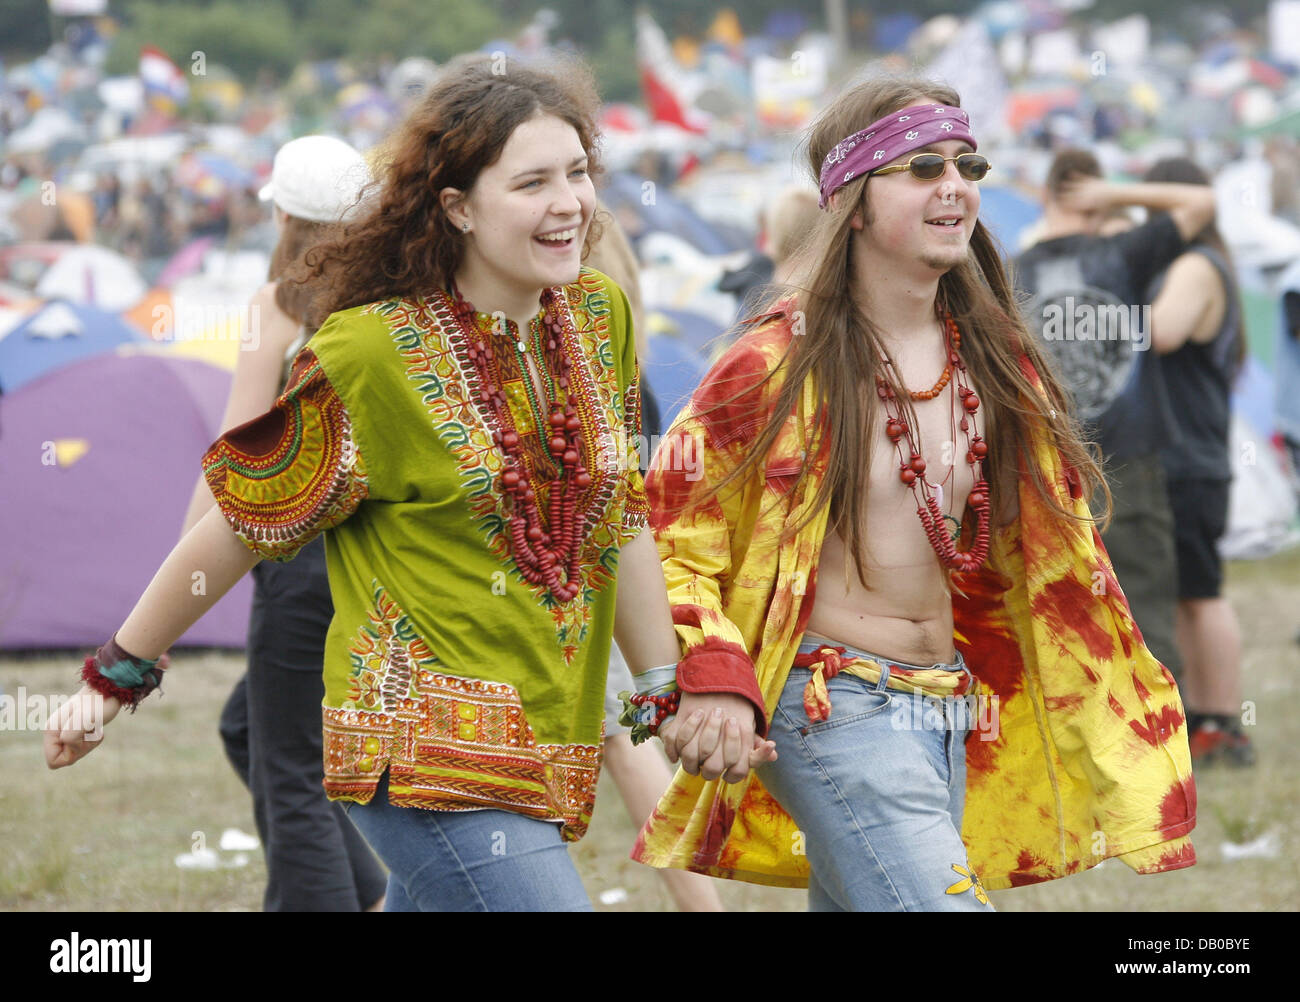 Two visitors pictured at Woodstock Festival in Kostrzyn, Poland, 03 August 2007. Organisers expect more than 300,000 - Stock Image